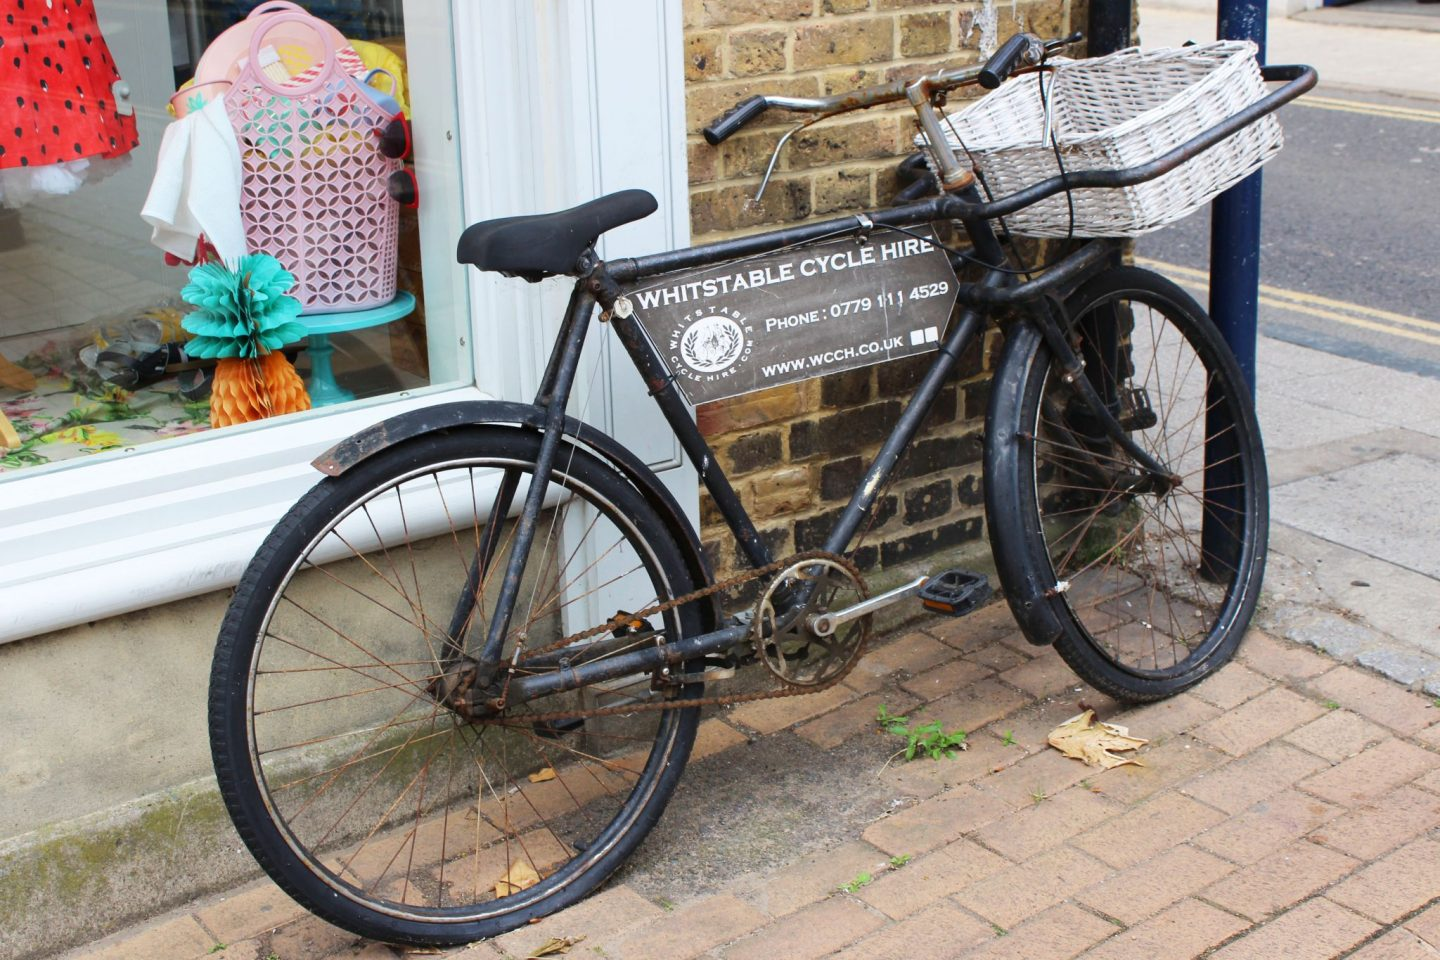 whitstable cycle hire